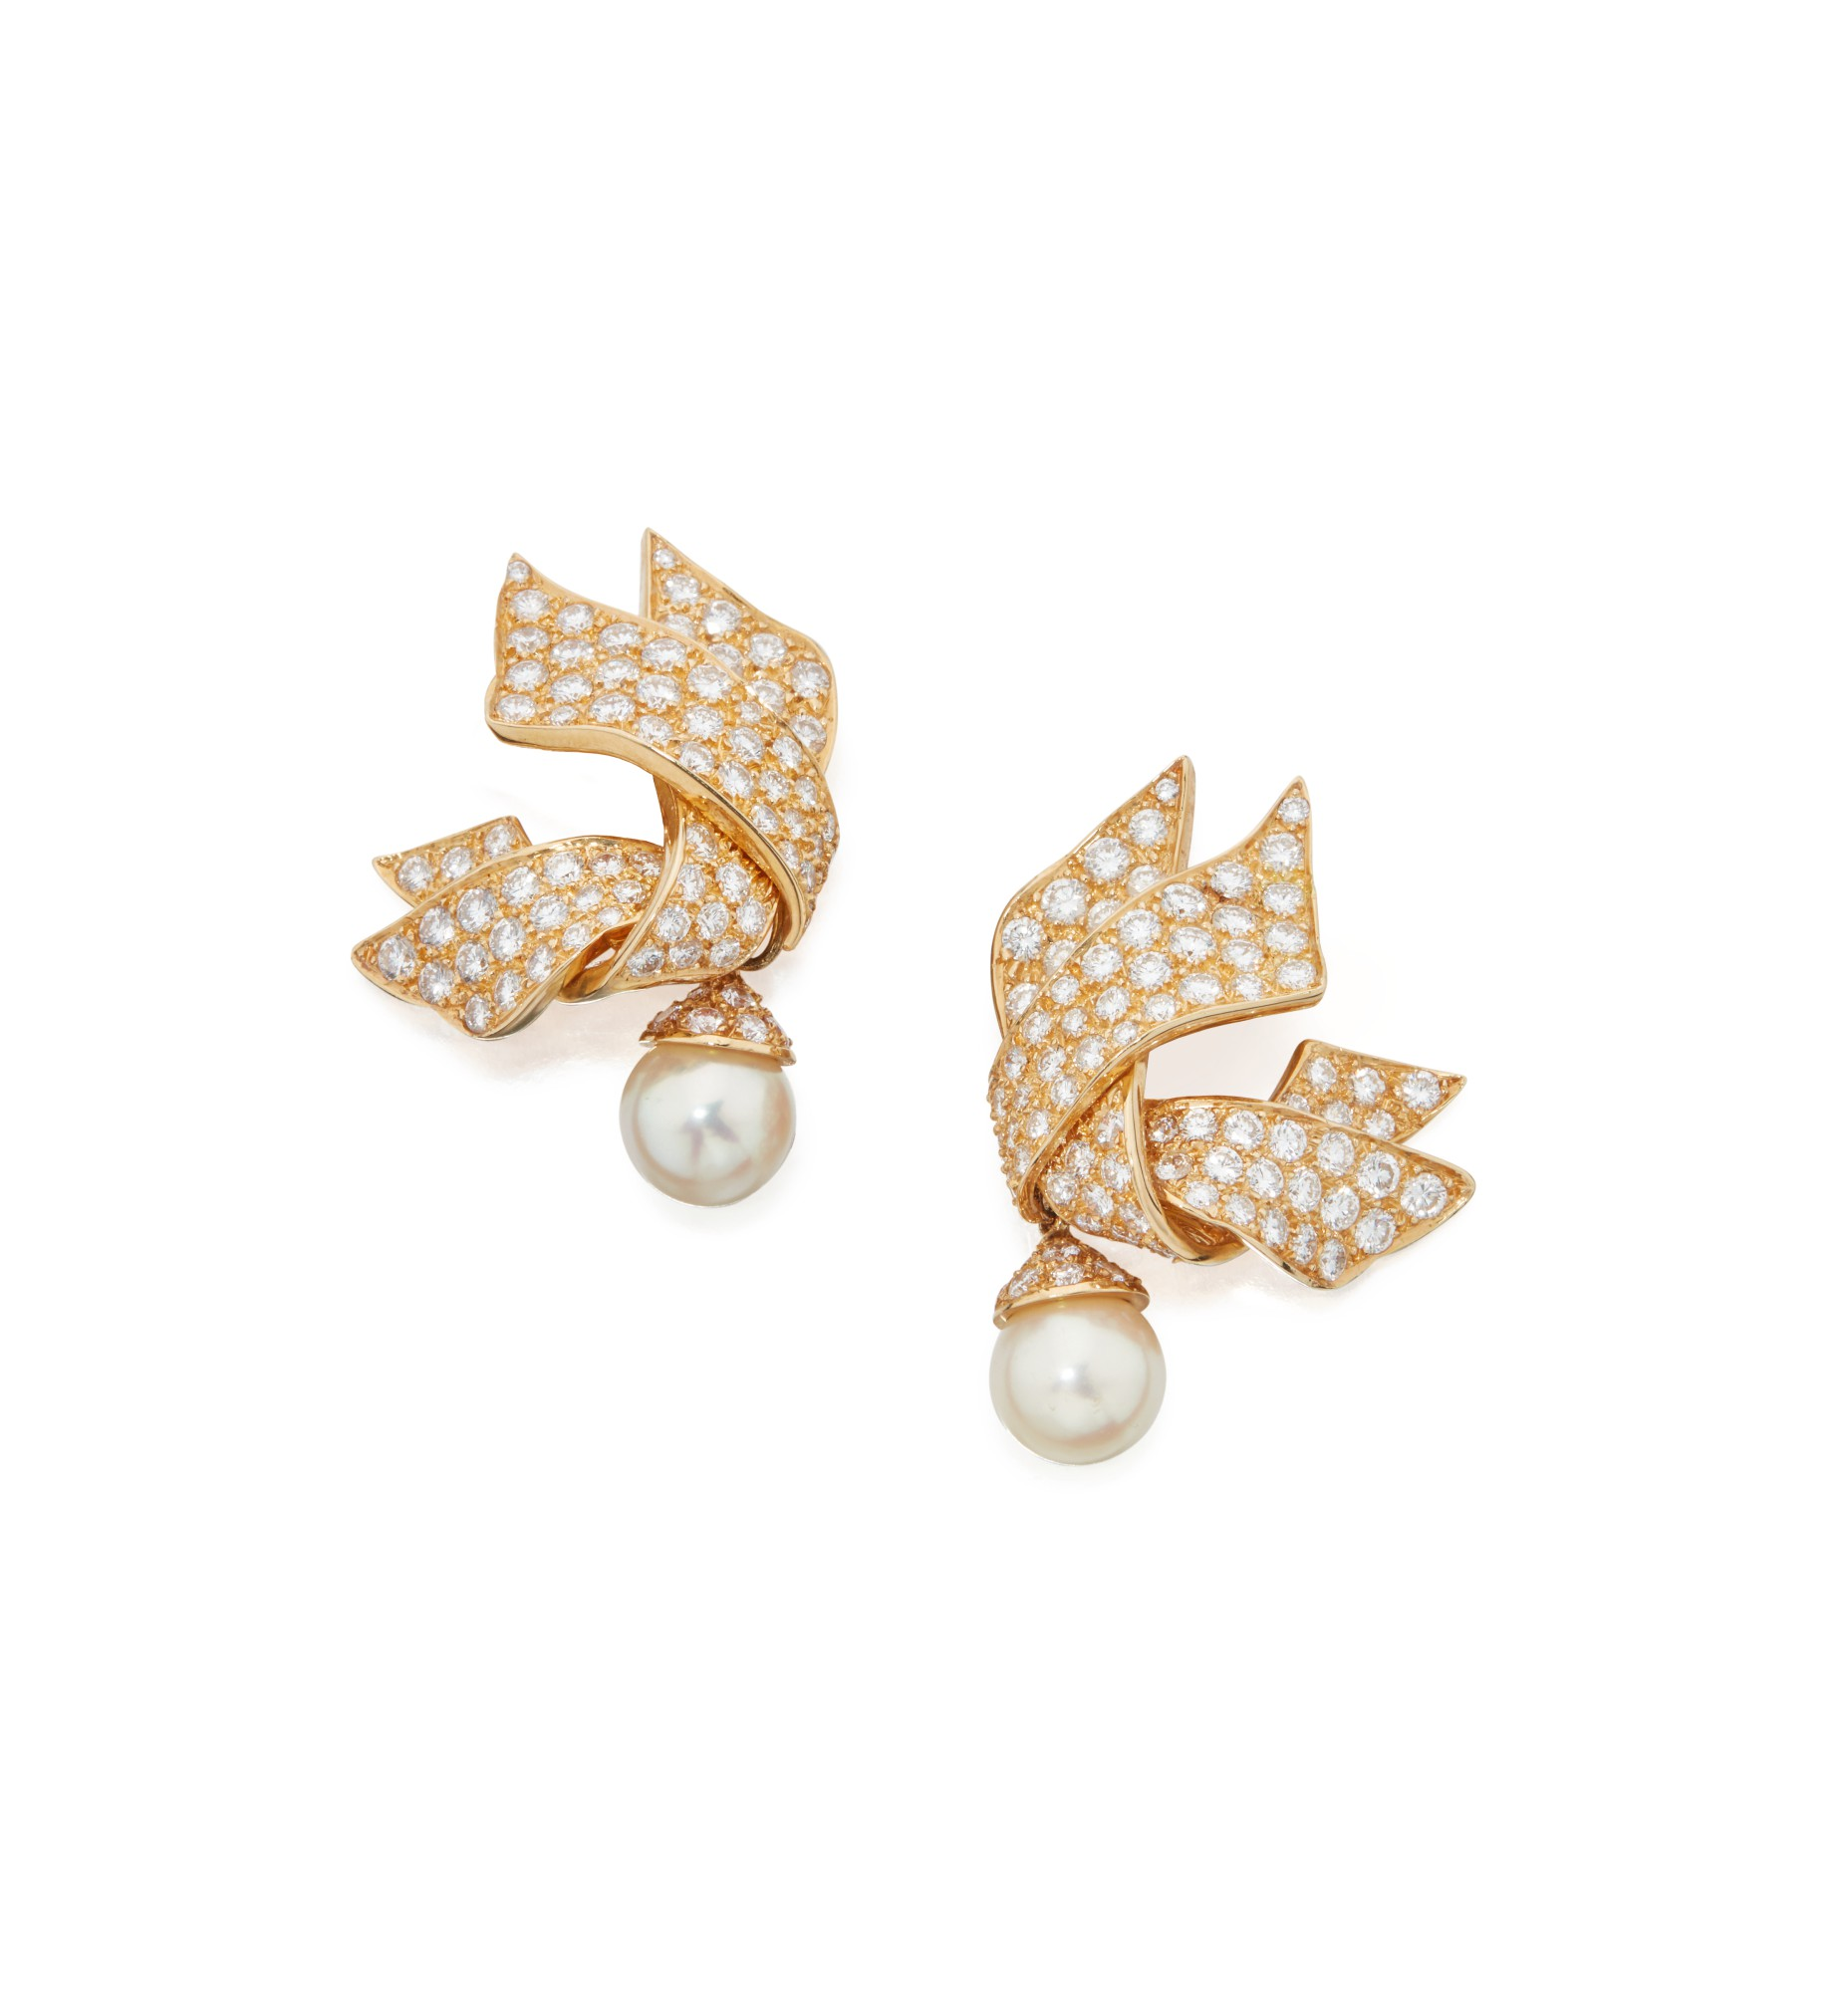 PAIR OF CULTURED PEARL AND DIAMOND EARCLIPS, CHANEL, FRANCE